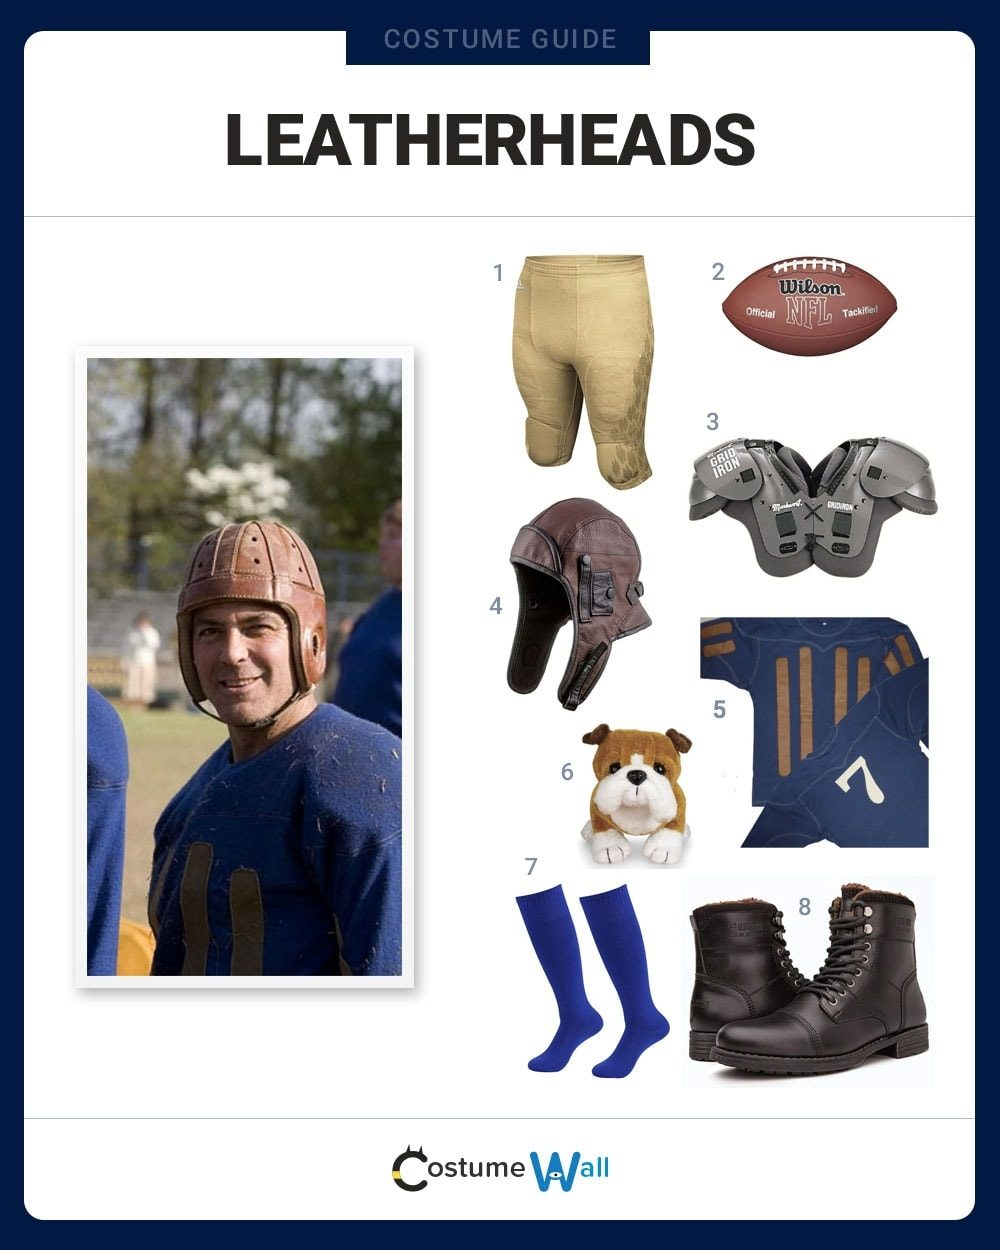 Leatherheads Costume Guide